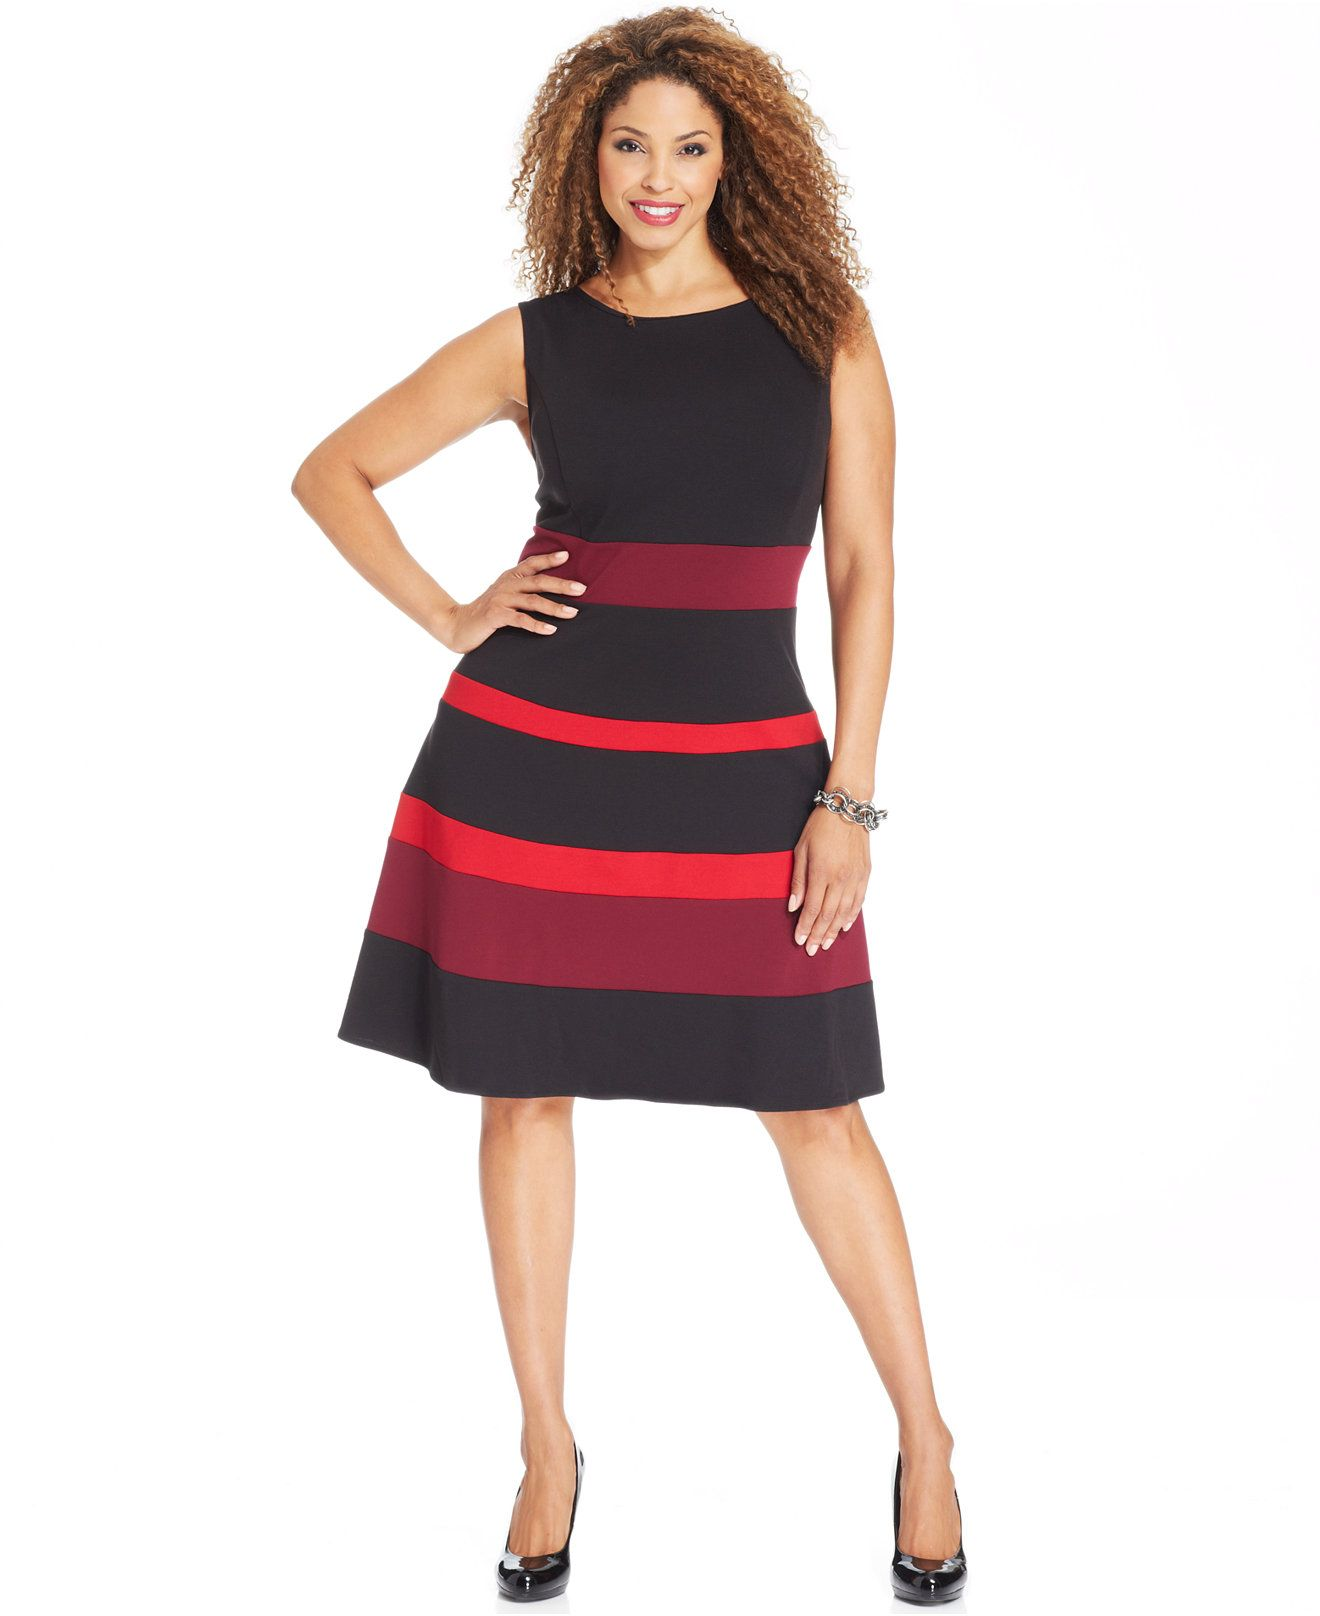 d9ad95d92ae NY Collection Plus Size Sleeveless Ponte-Knit Colorblocked A-Line Dress -  Dresses - Plus Sizes - Macy s